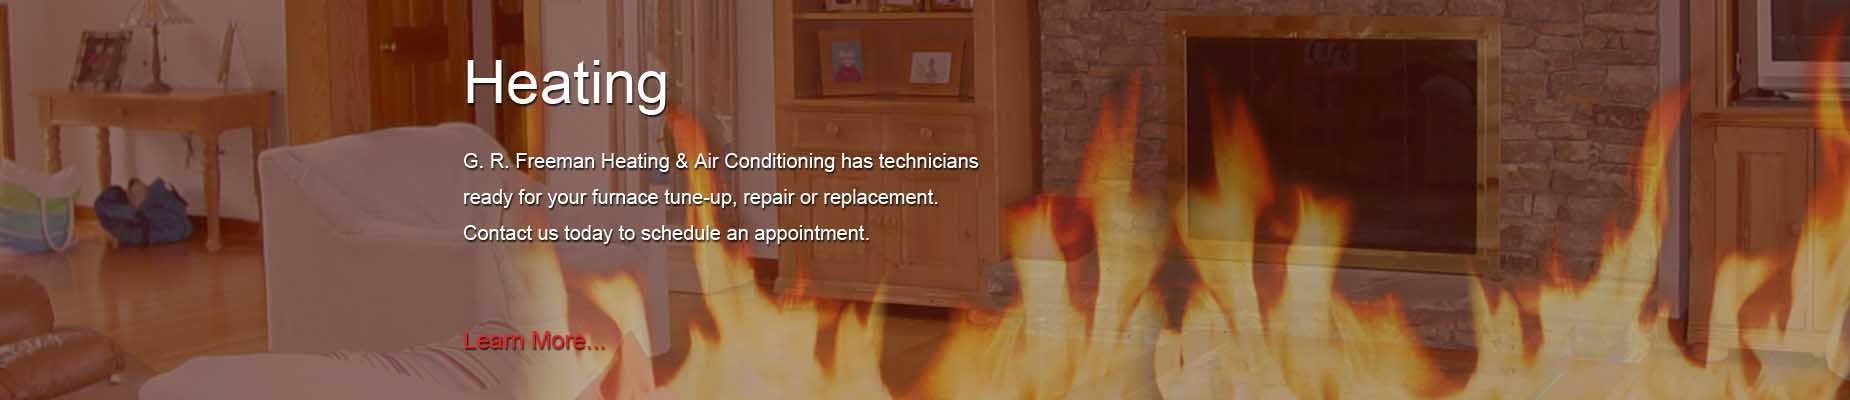 Furnace repair service in Newburgh IN